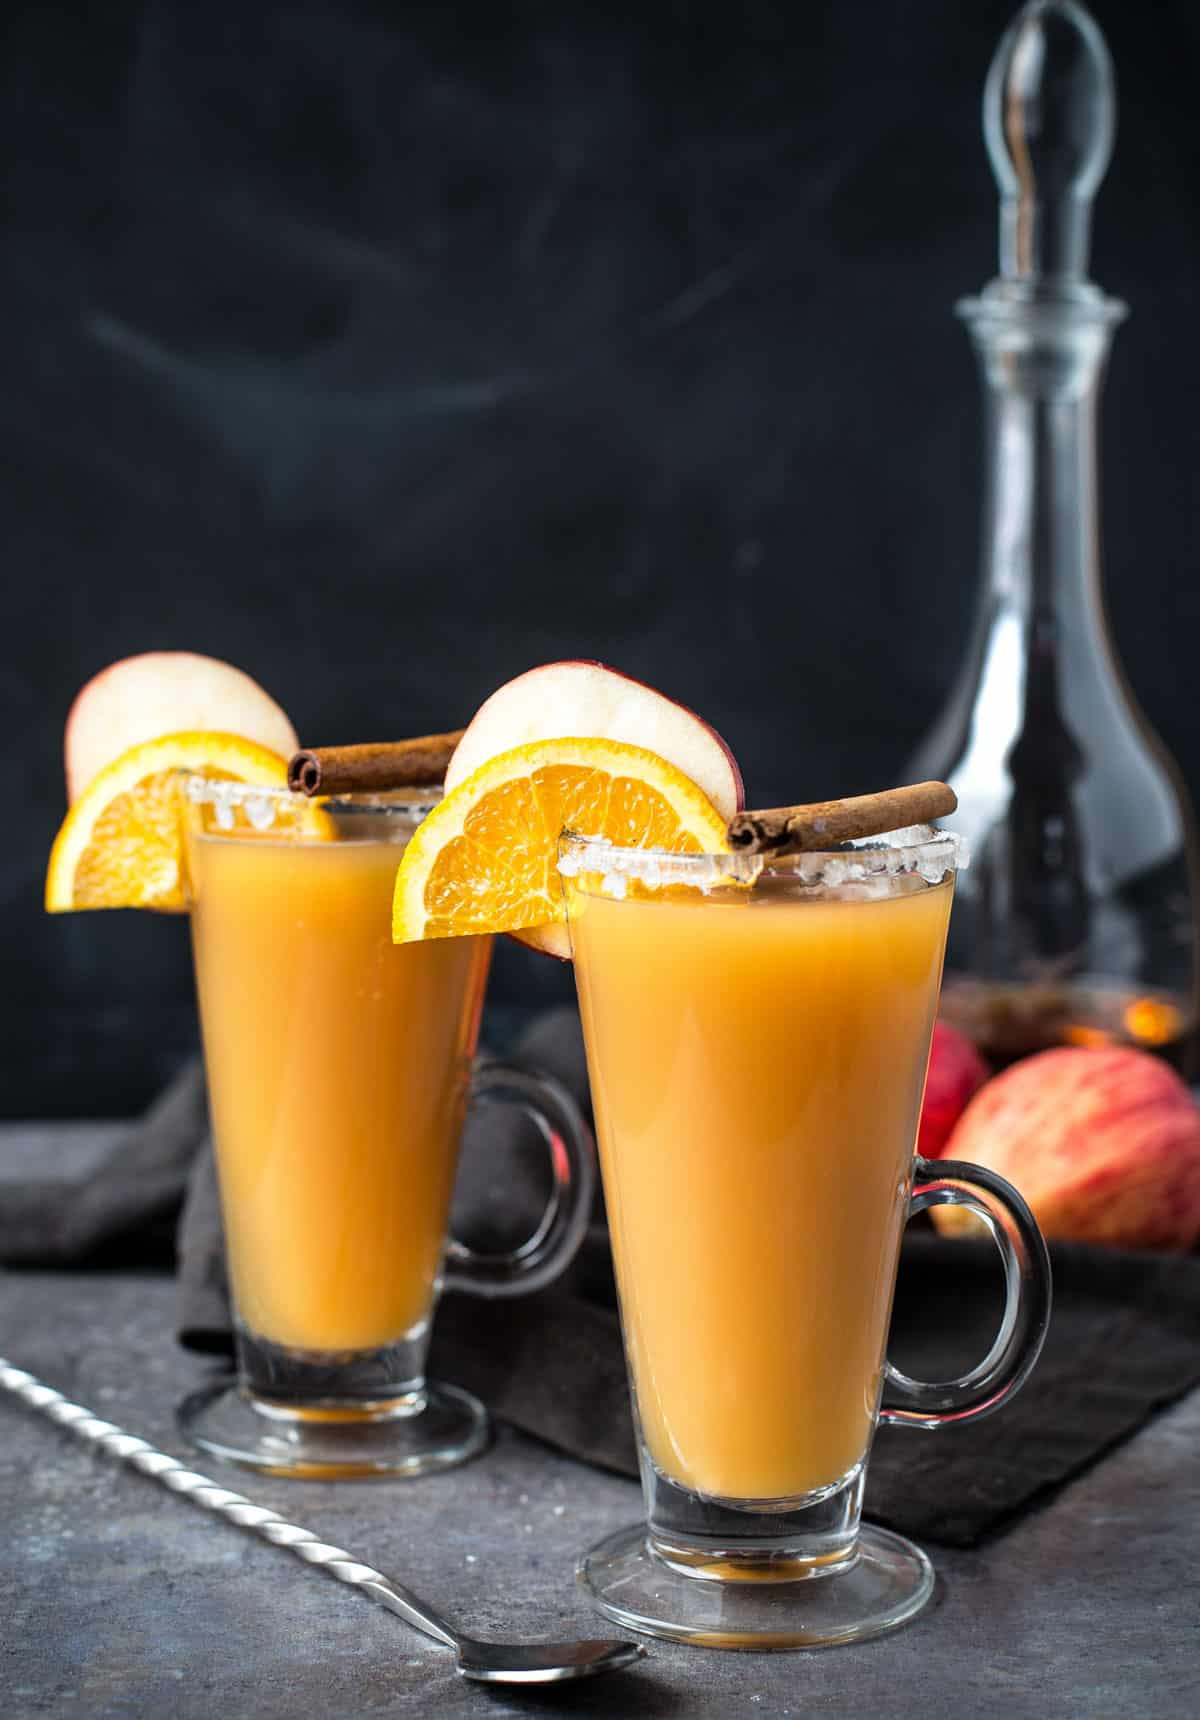 Two glasses of Bourbon Spiked Hot Apple Cider